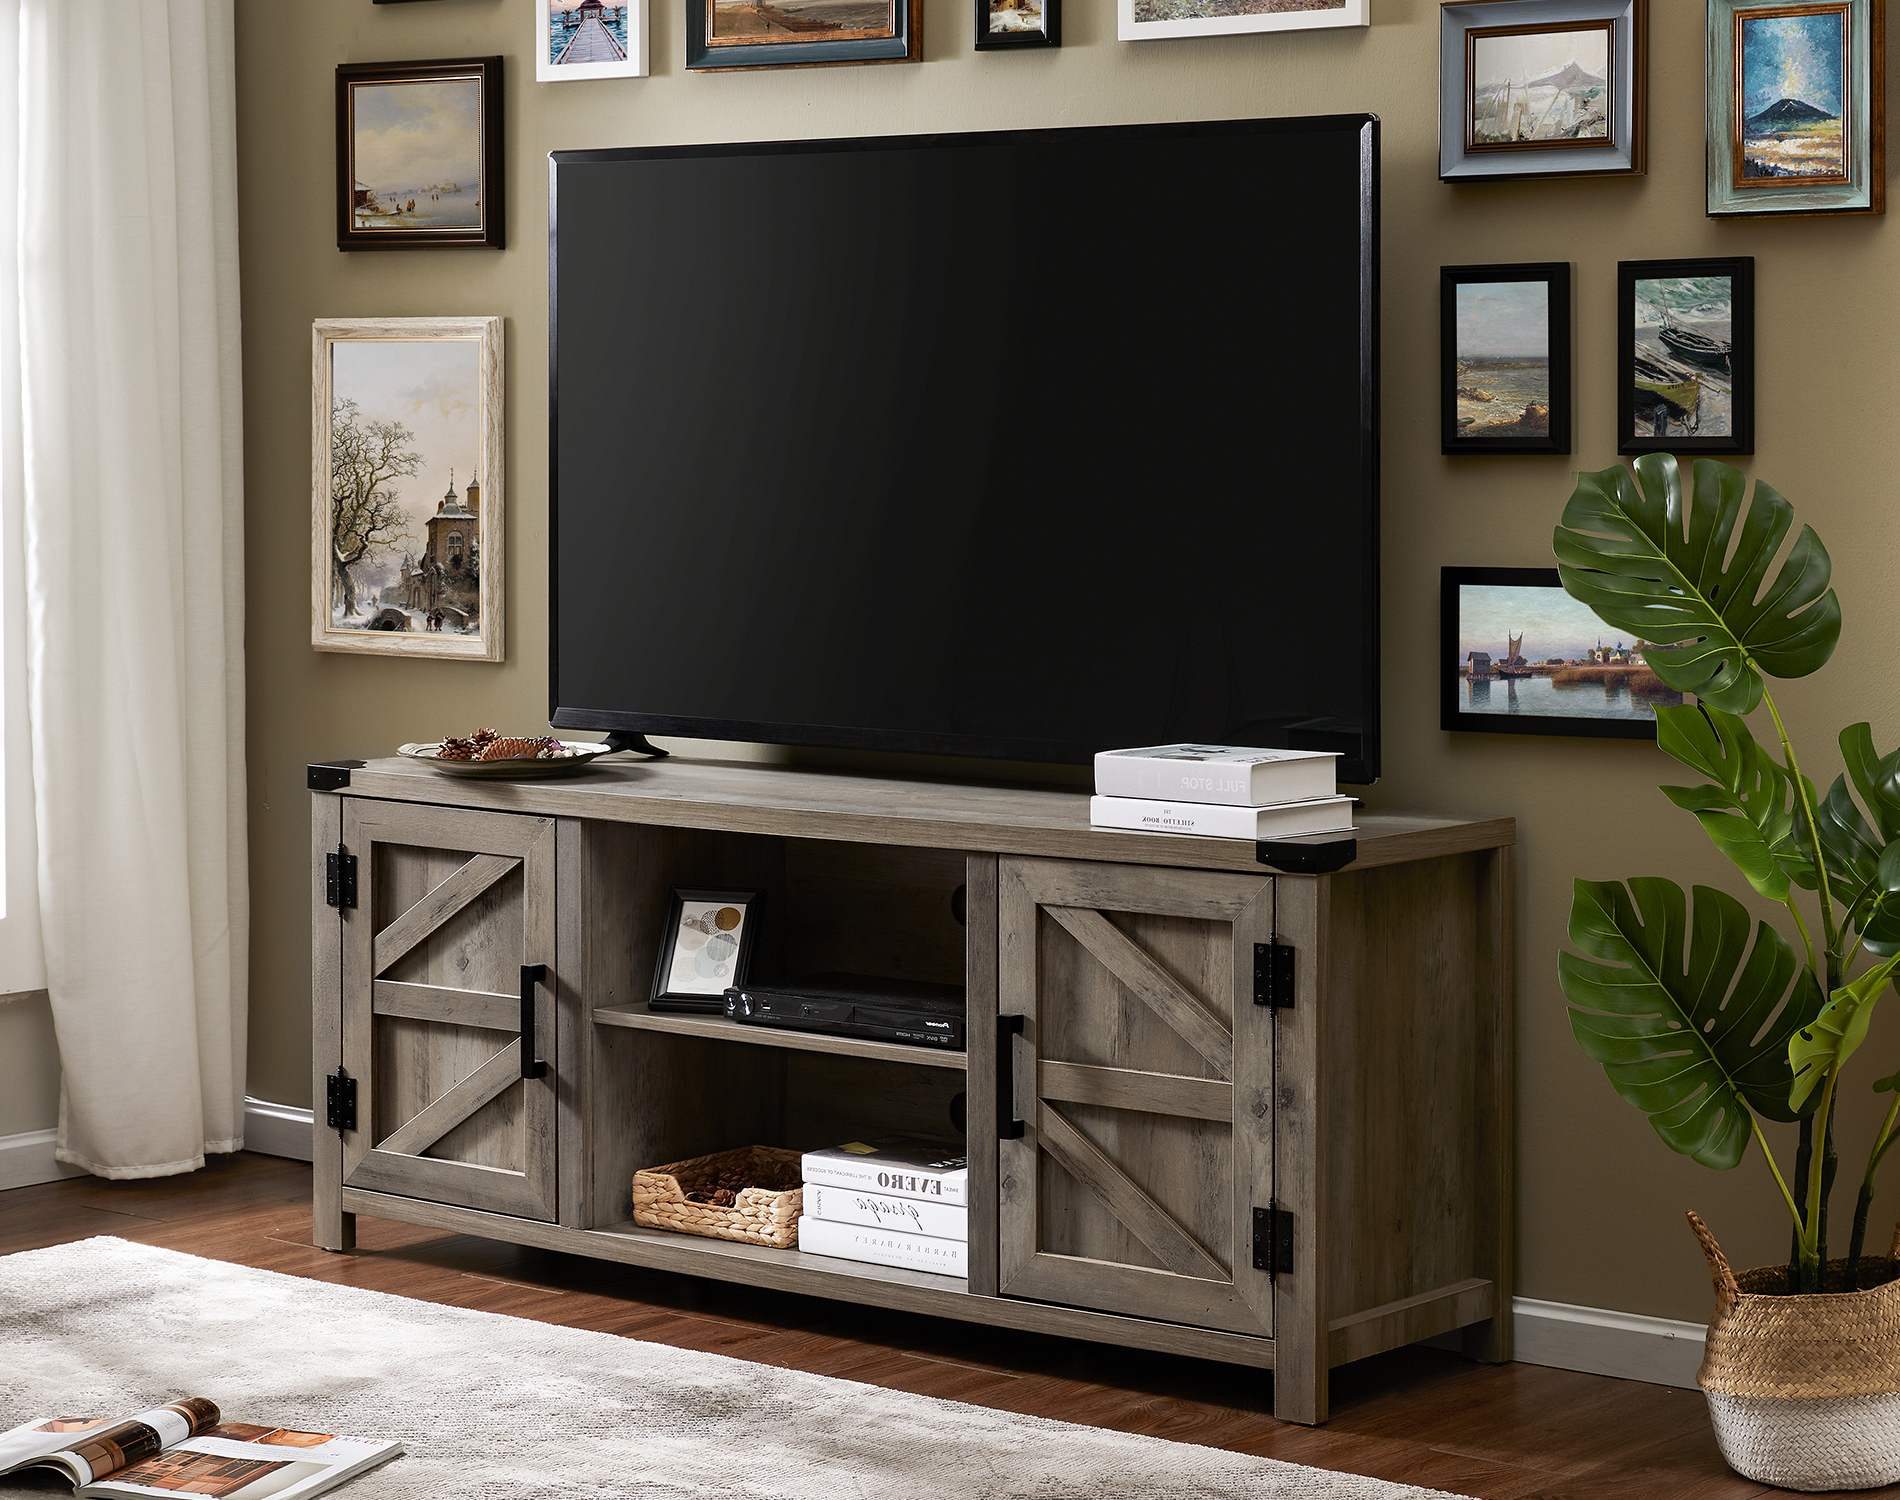 Fitueyes Farmhouse Barn Door Wood Tv Stands For 70 Inch Regarding Fitueyes Rolling Tv Cart For Living Room (View 14 of 20)